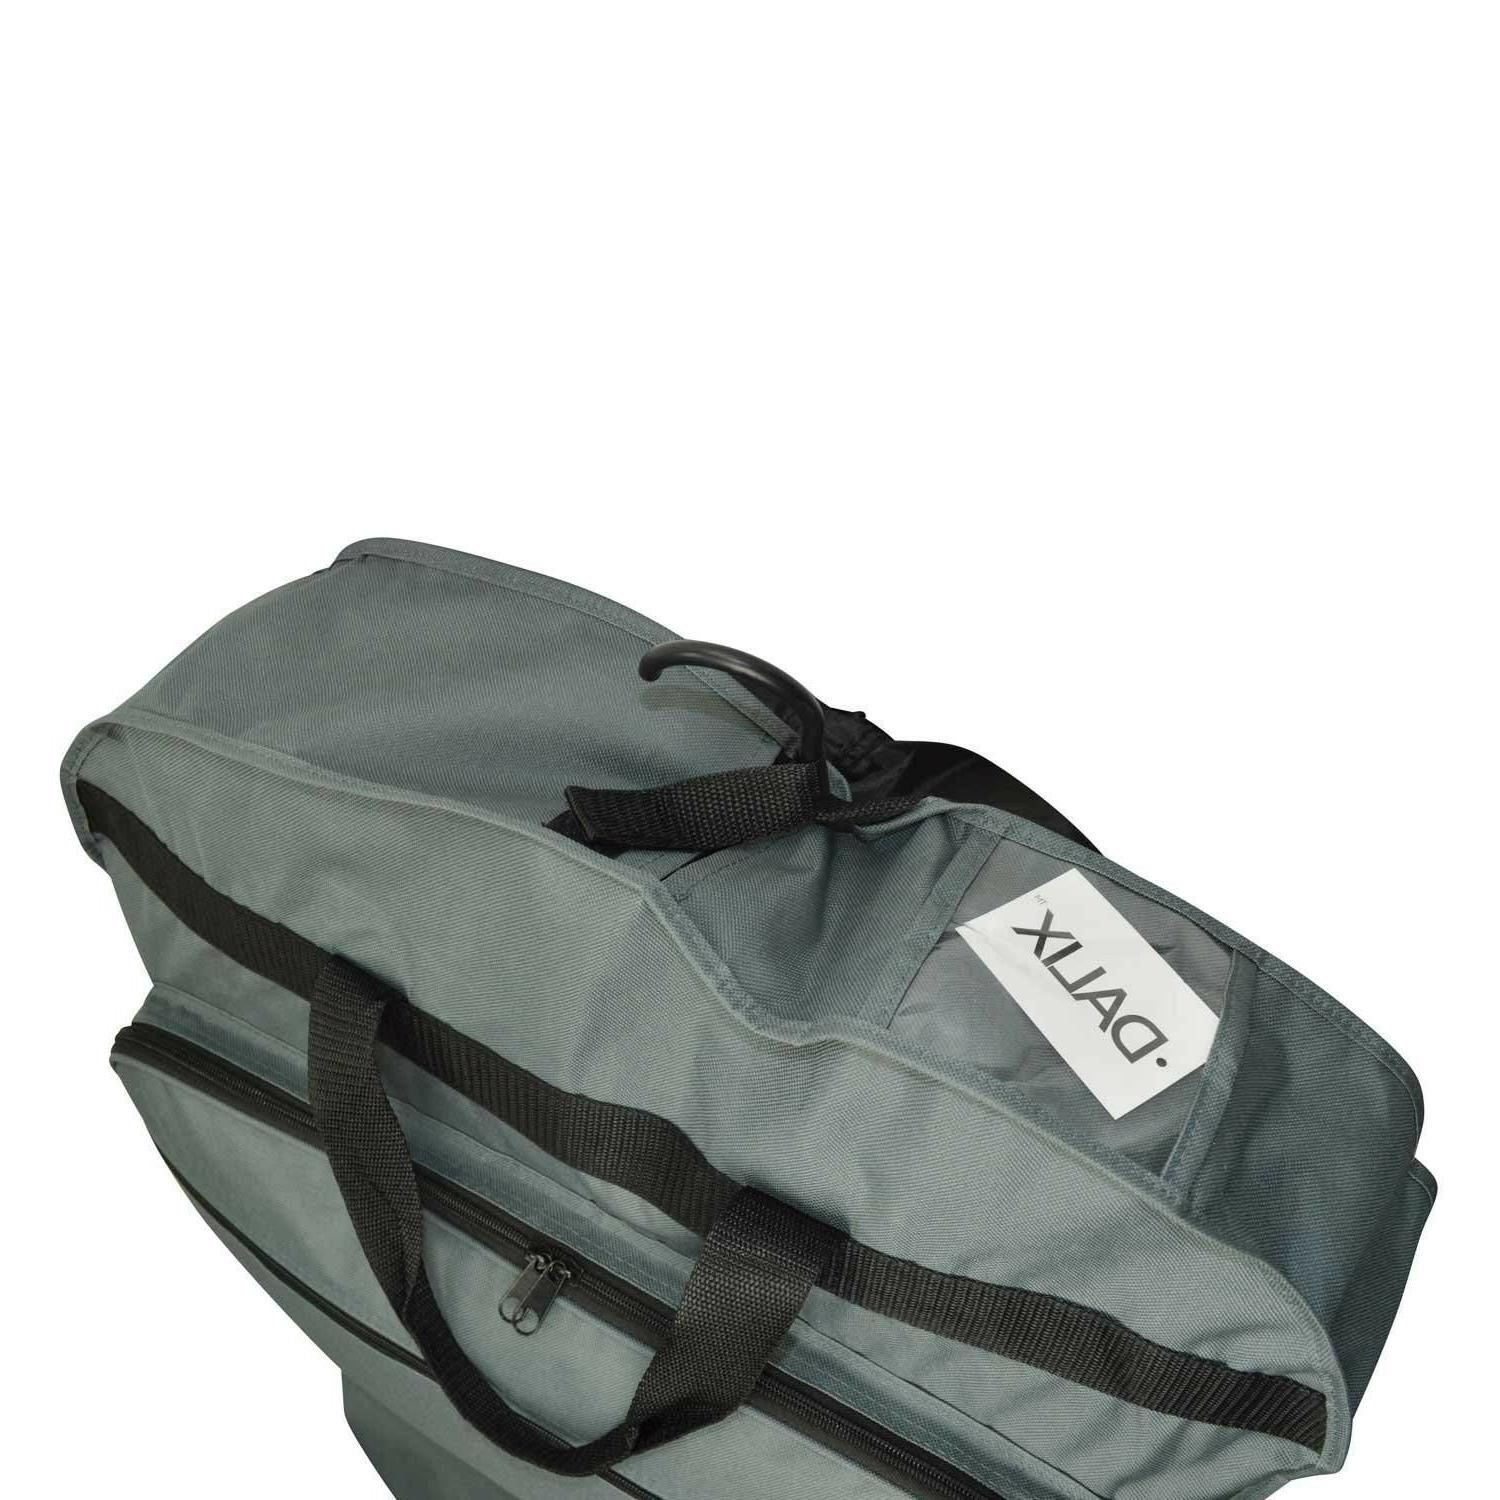 Hanging Travel Bag Suit NEW